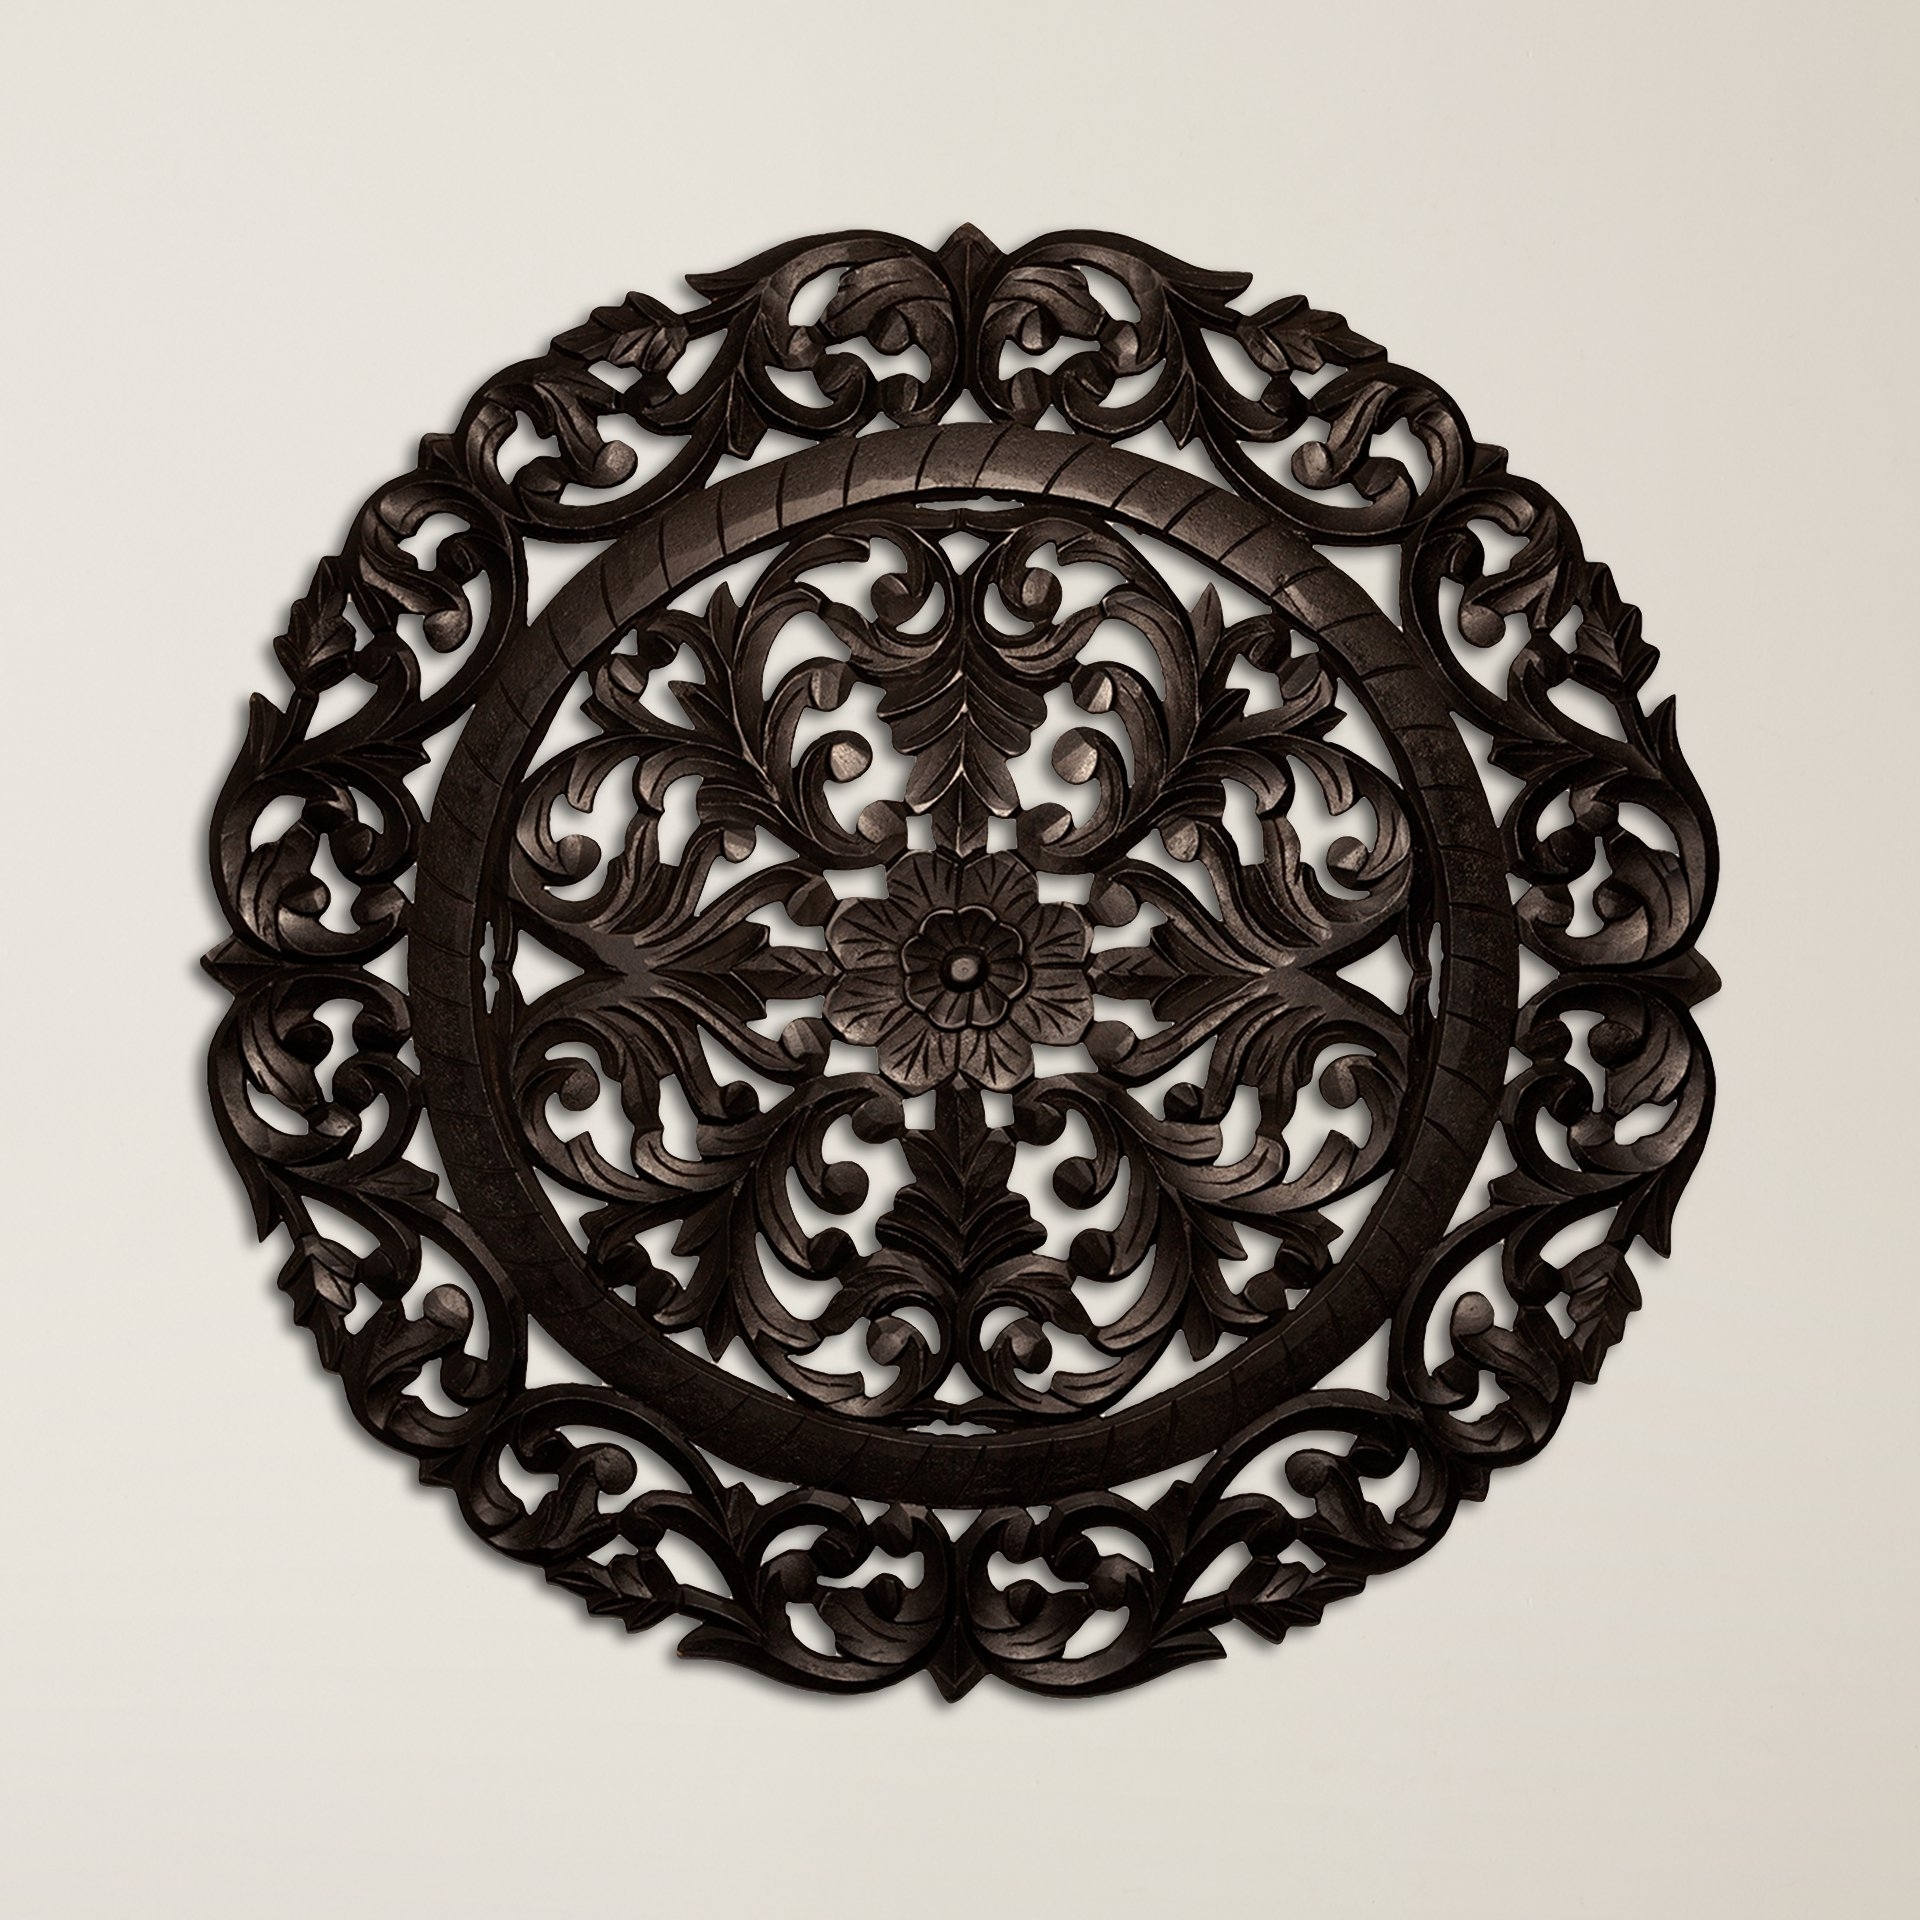 Round Medallion Wall Art Wooden Plate Design Ideas Outdoor – Awesome For Famous Wood Medallion Wall Art (View 7 of 20)